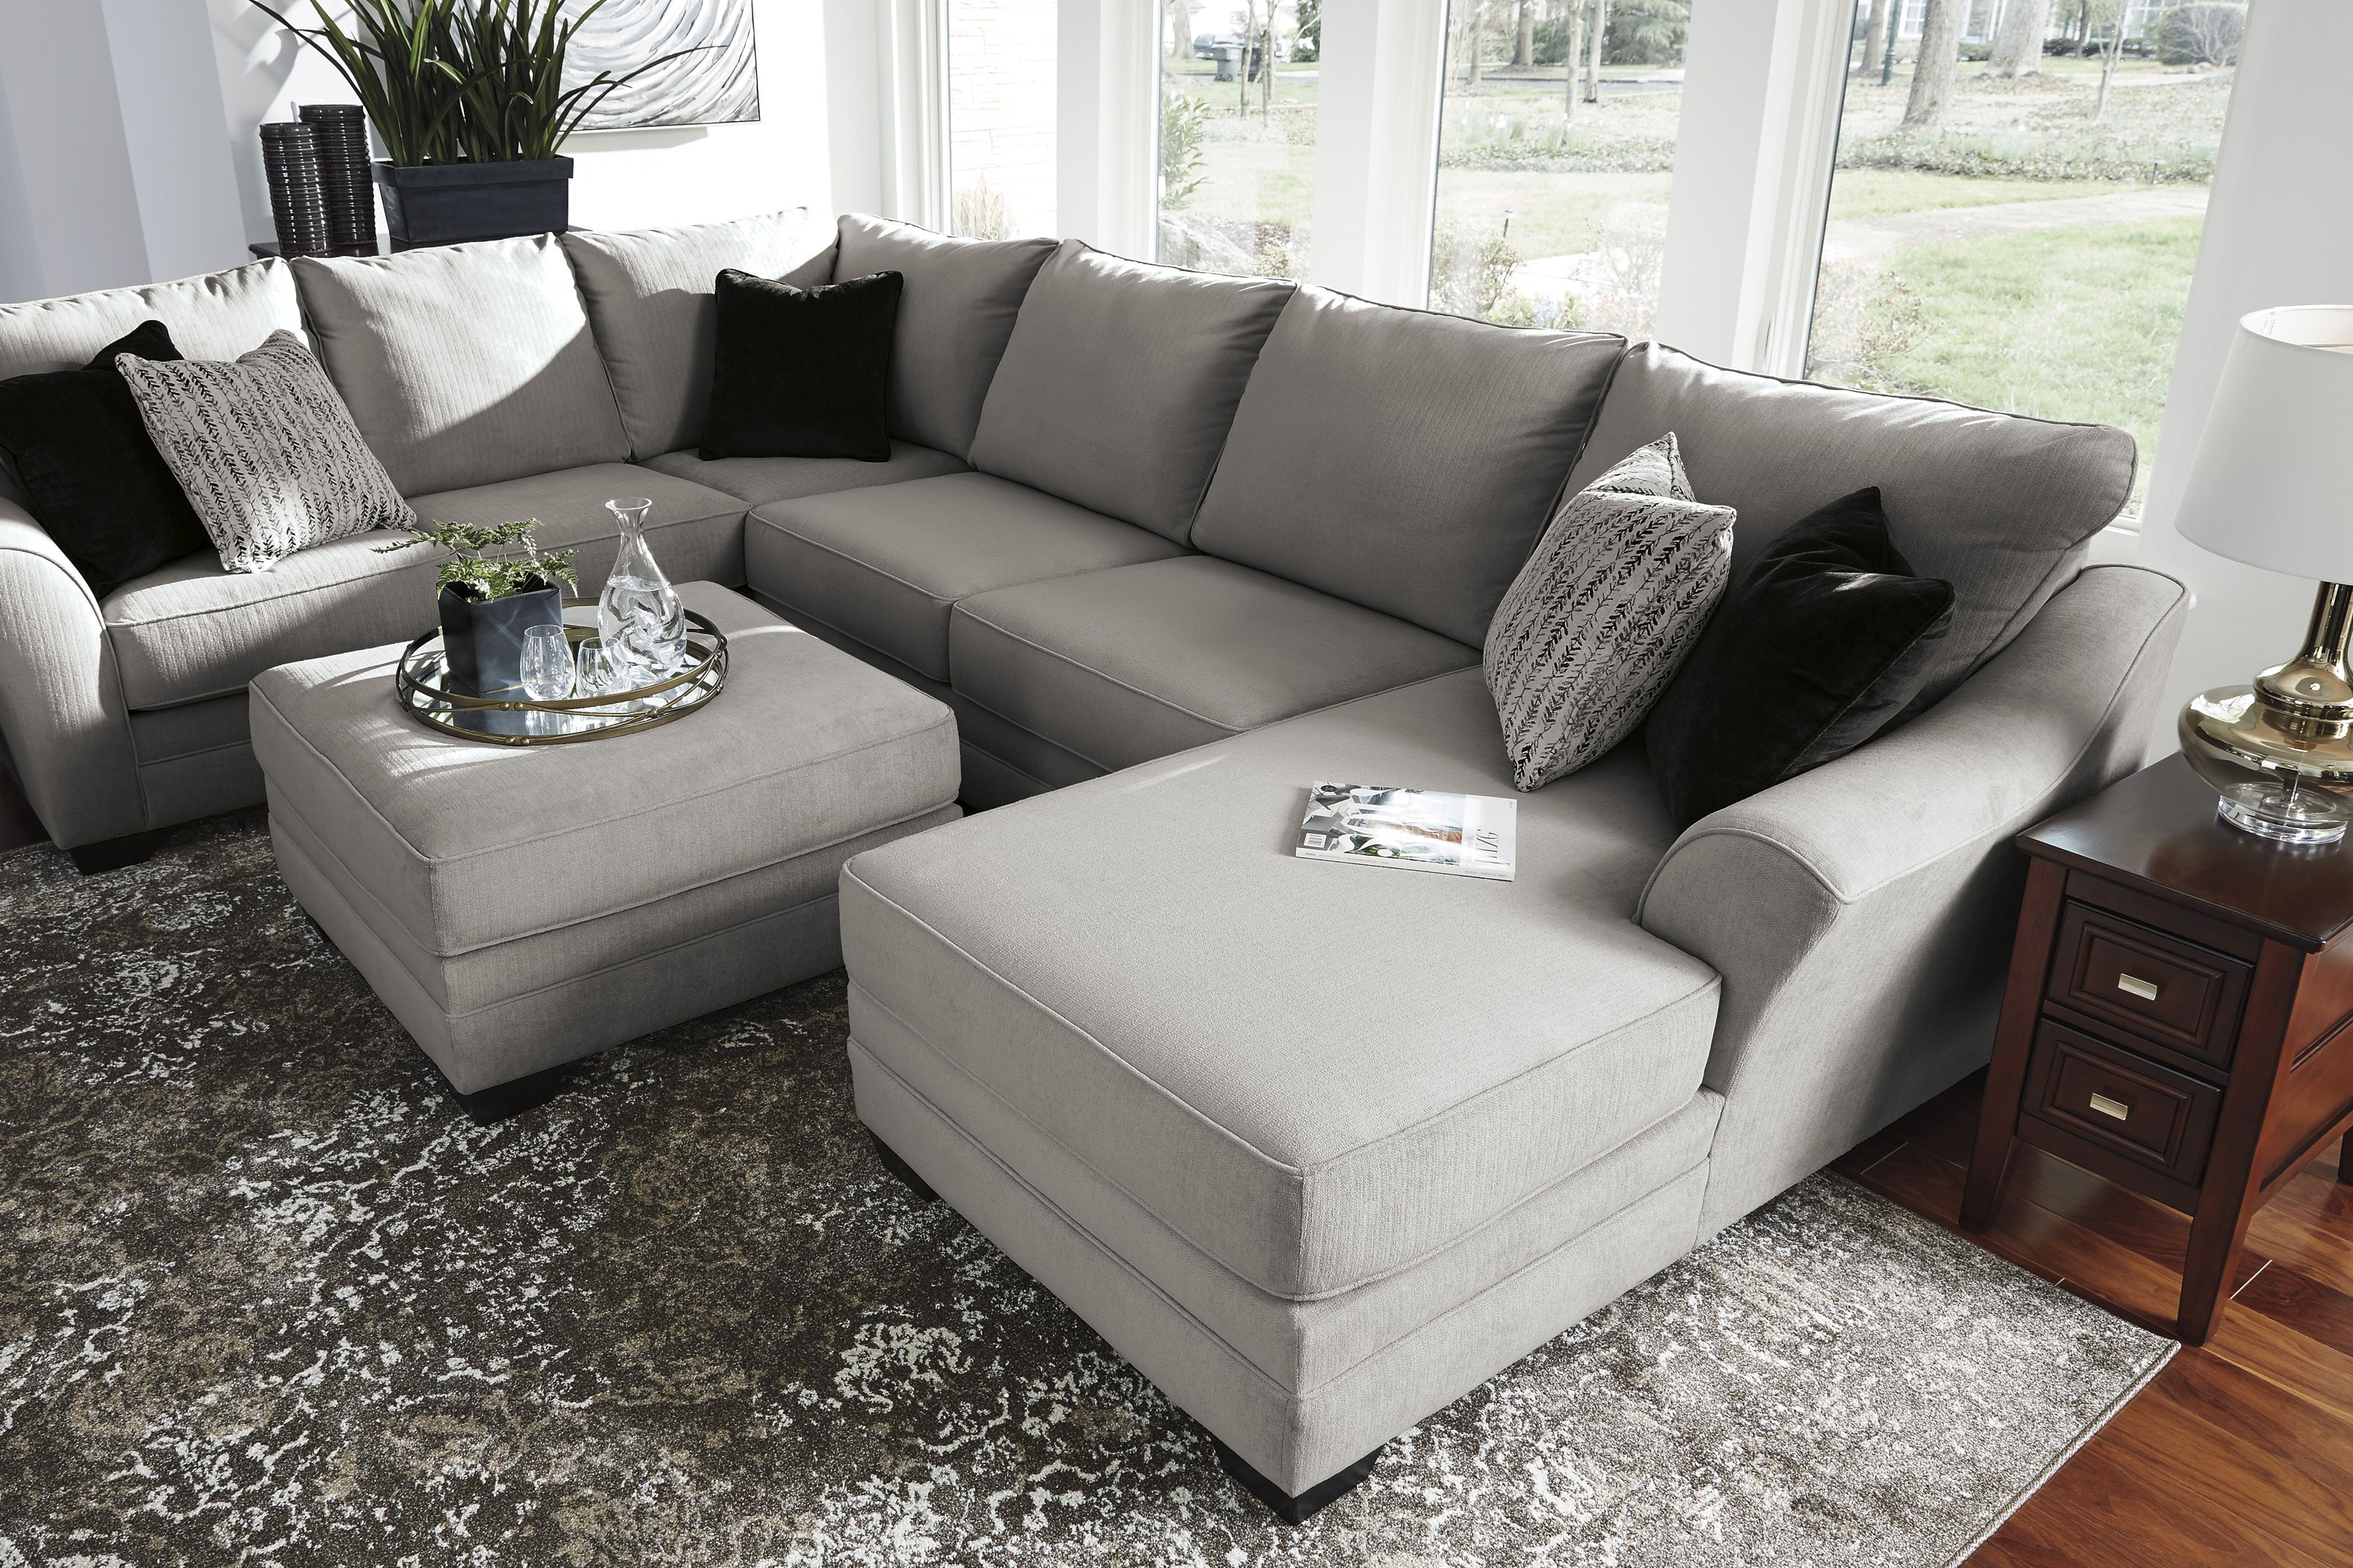 Palempor 3 Piece Laf Sectional In (View 12 of 20)